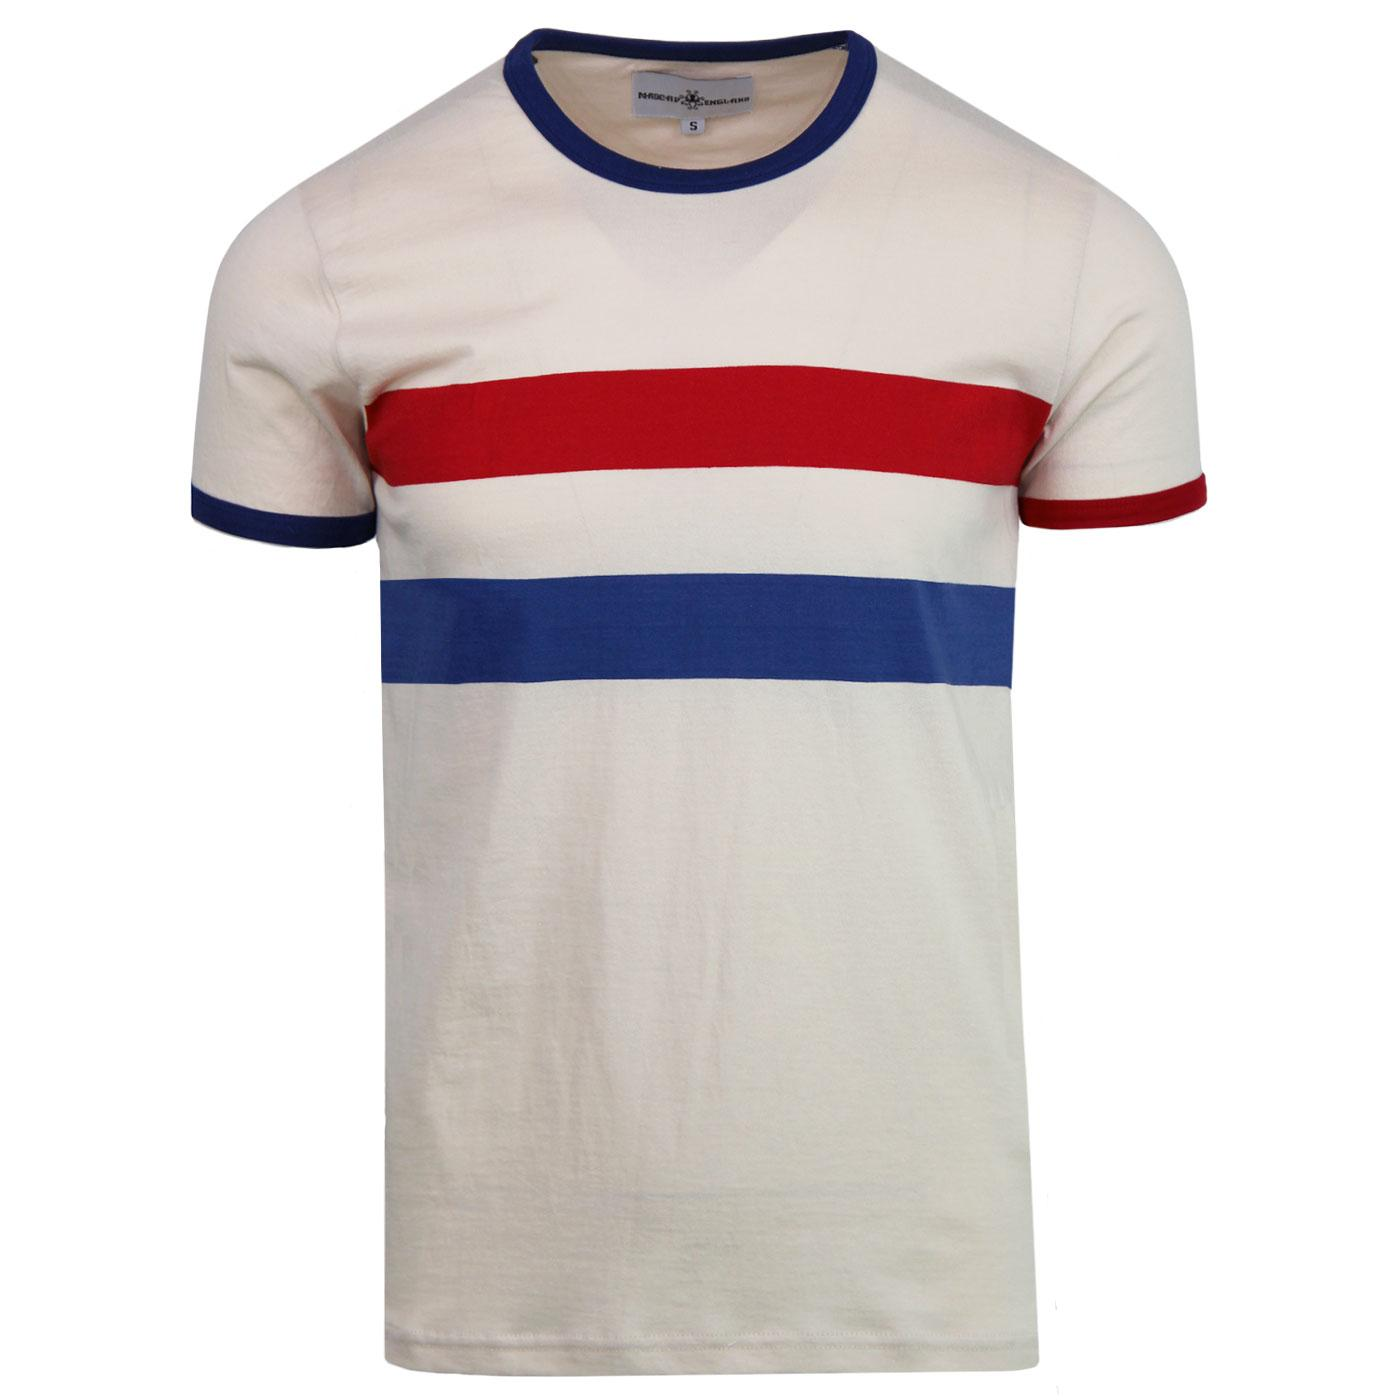 Bedford MADCAP ENGLAND Retro Mod Chest Stripe Tee